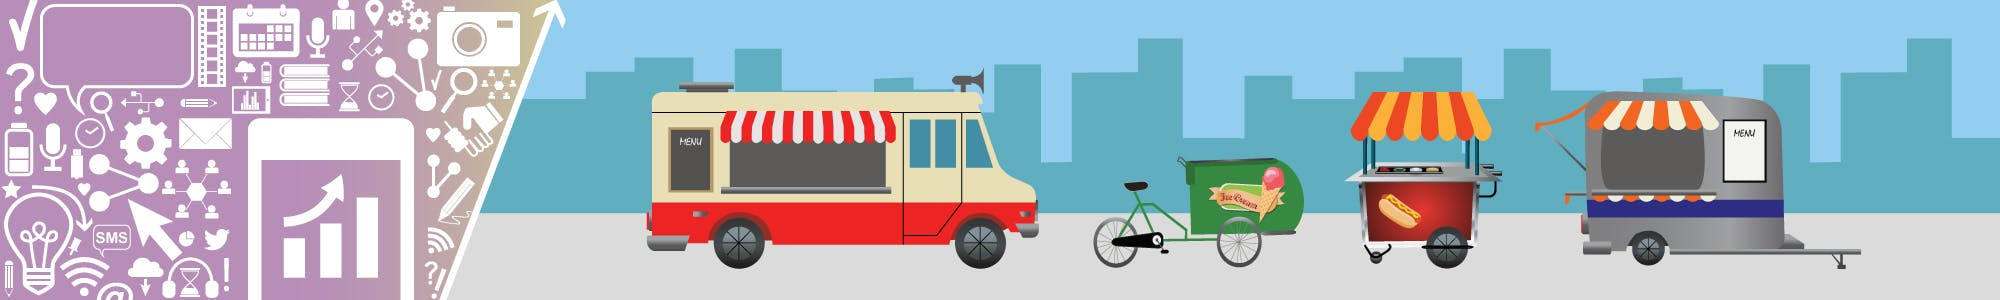 Infographic beside food truck, ice cream cart, hot dog cart and mobile refreshment vehicle.